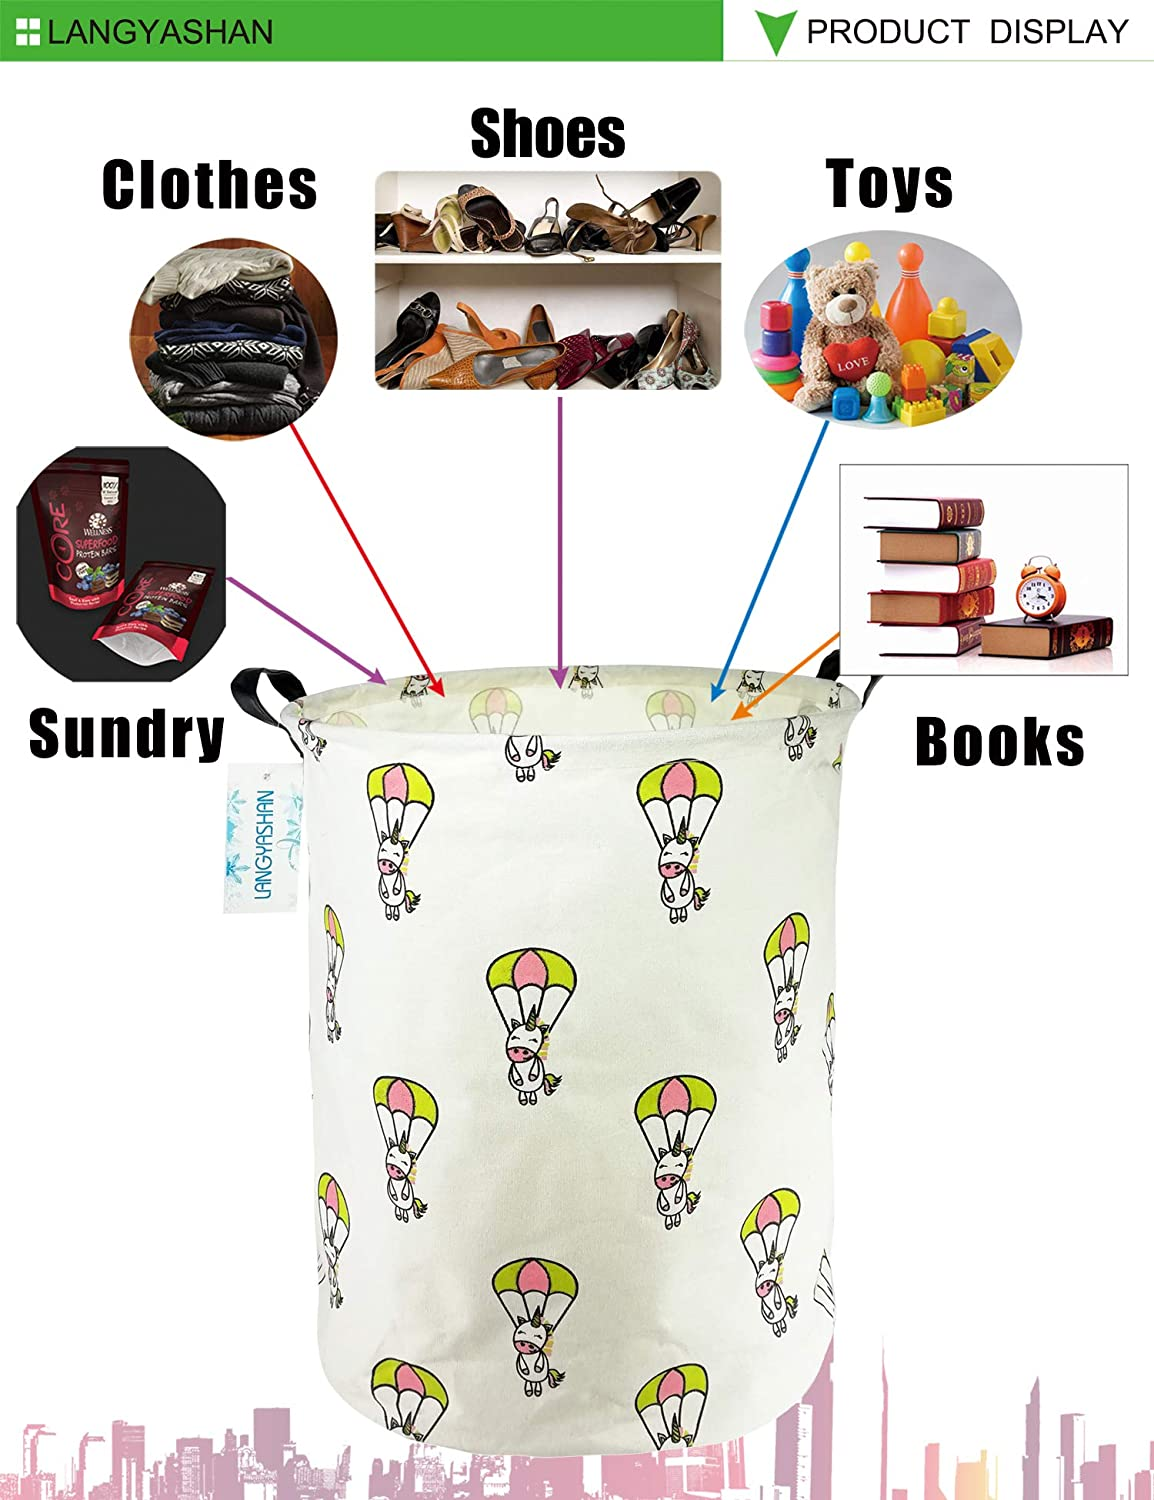 Clothes,Baby Nursery Bedroom Smile Dog LANGYASHAN Storage Bin,Canvas Fabric Collapsible Organizer Basket for Laundry Hamper,Toy Bins,Gift Baskets